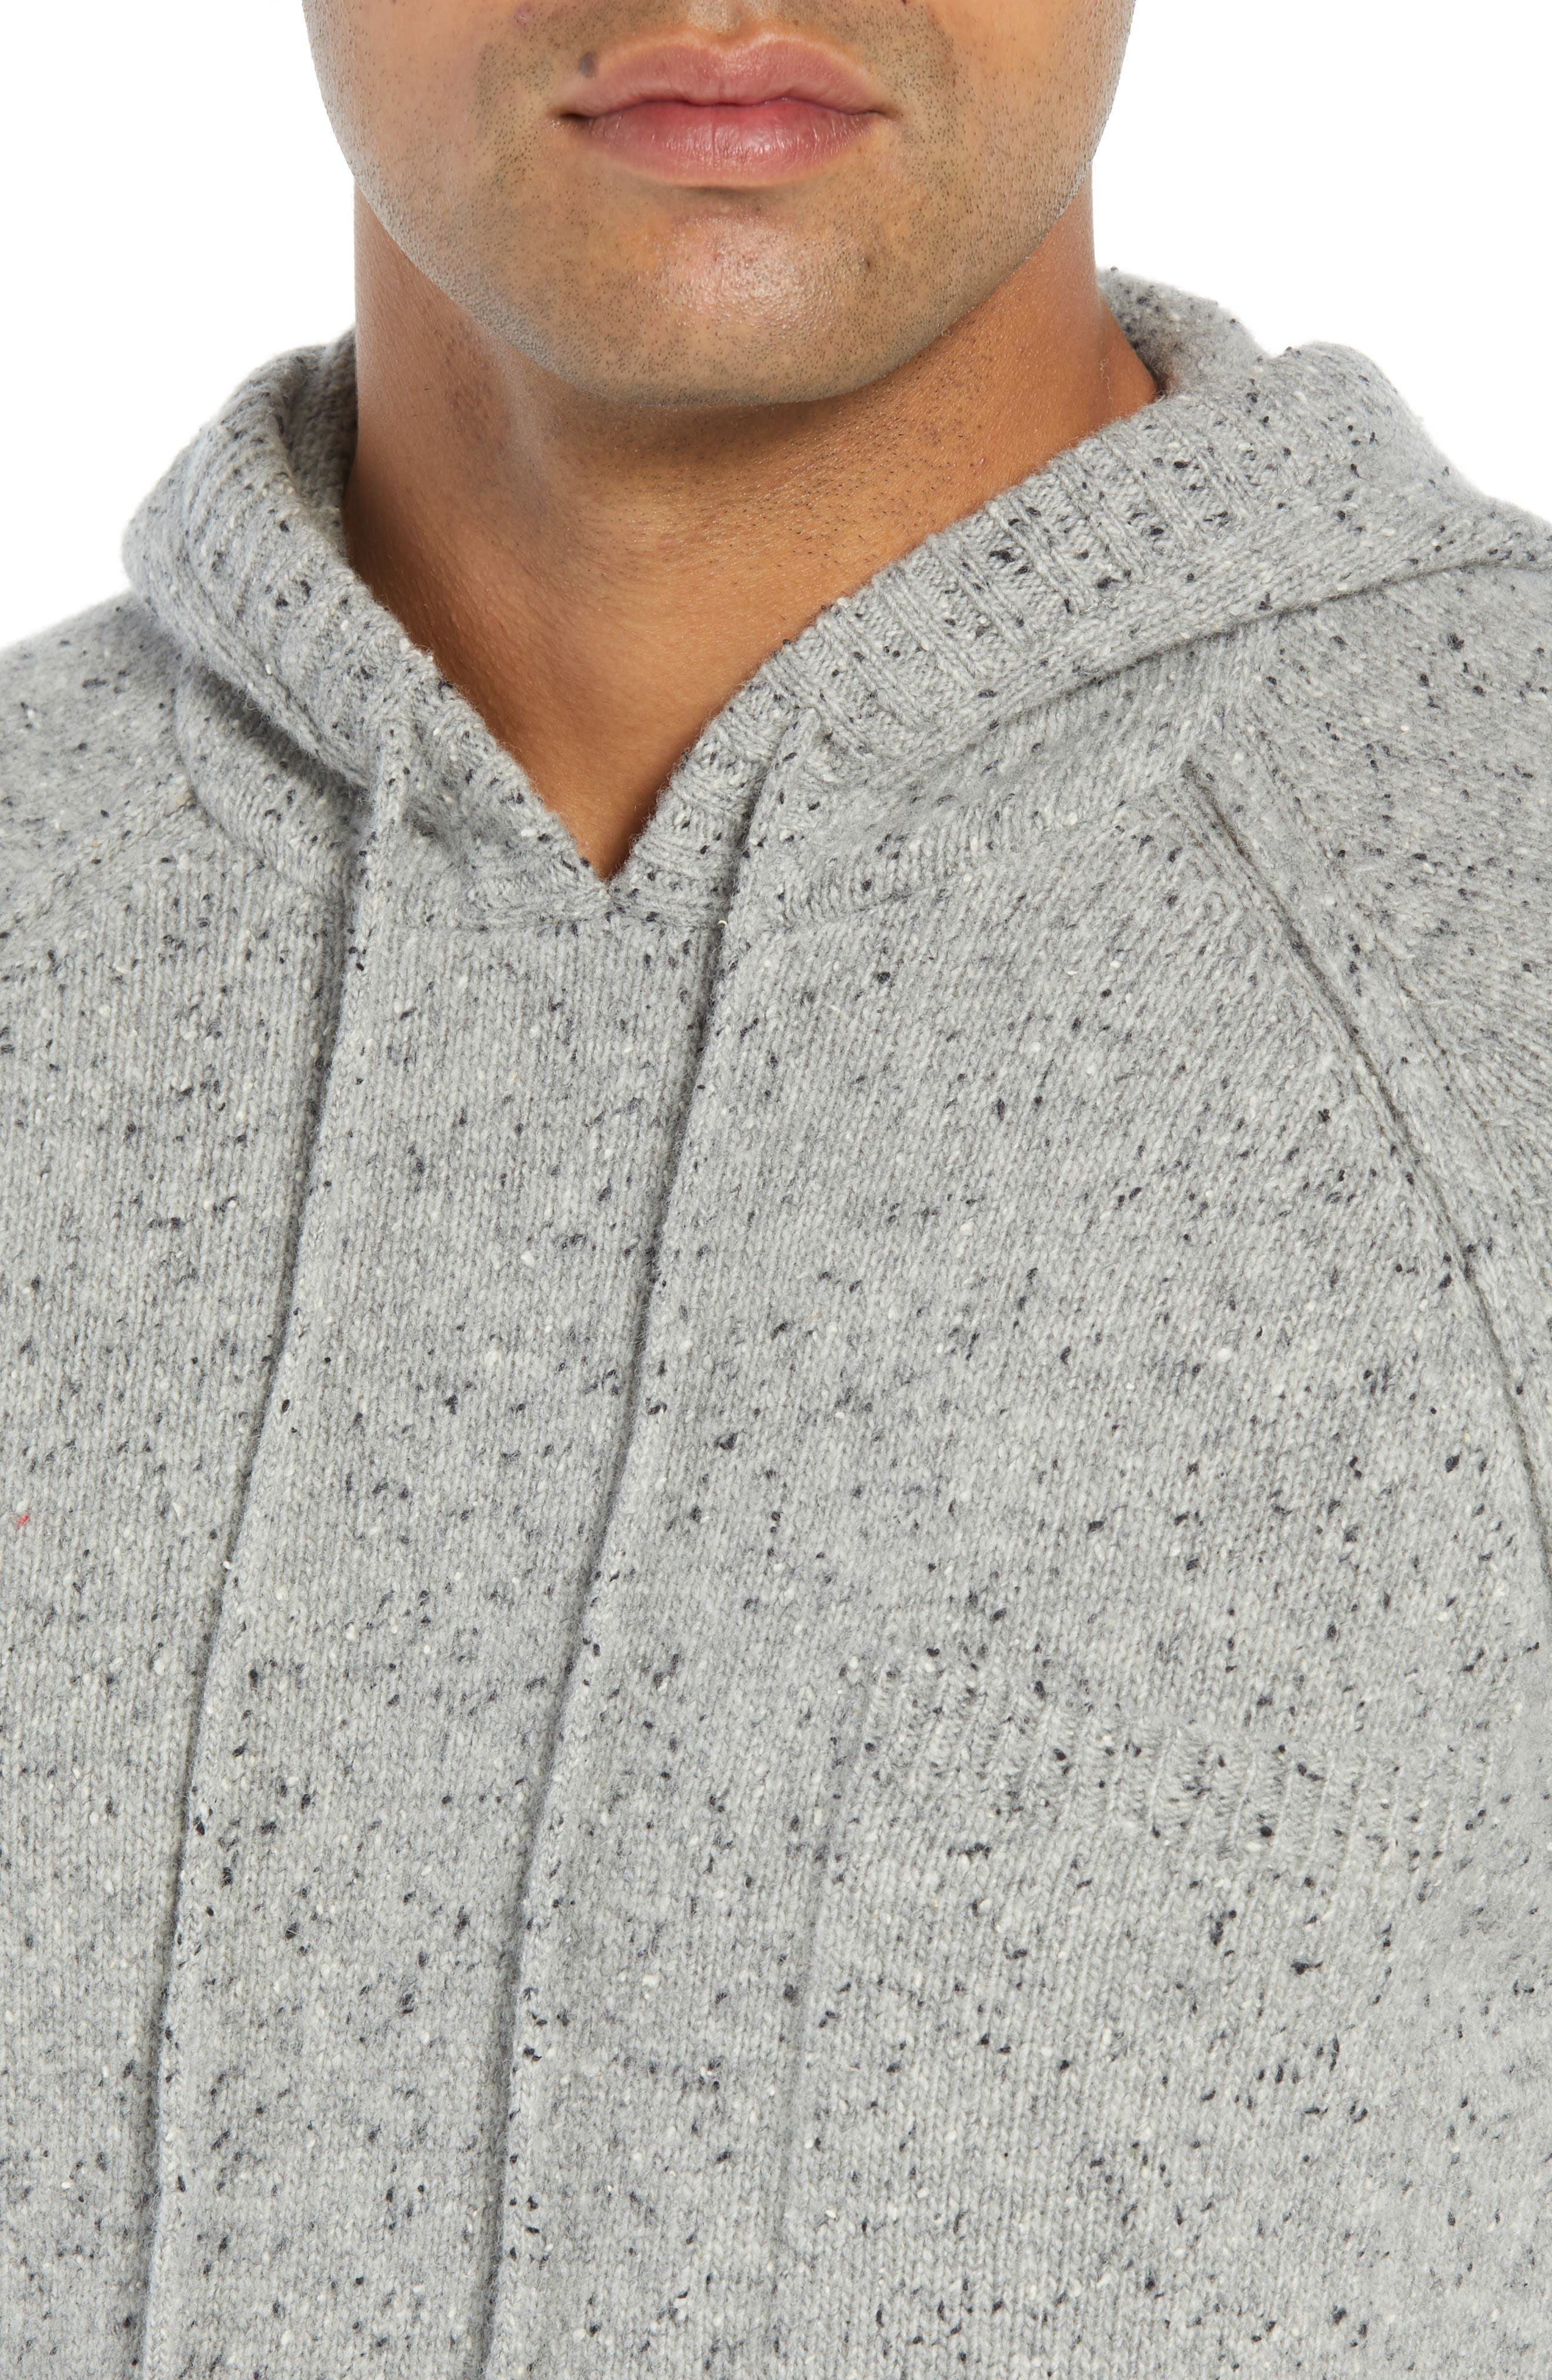 Rule 18 Donegal Regular Fit Hooded Sweater,                             Alternate thumbnail 4, color,                             GREY